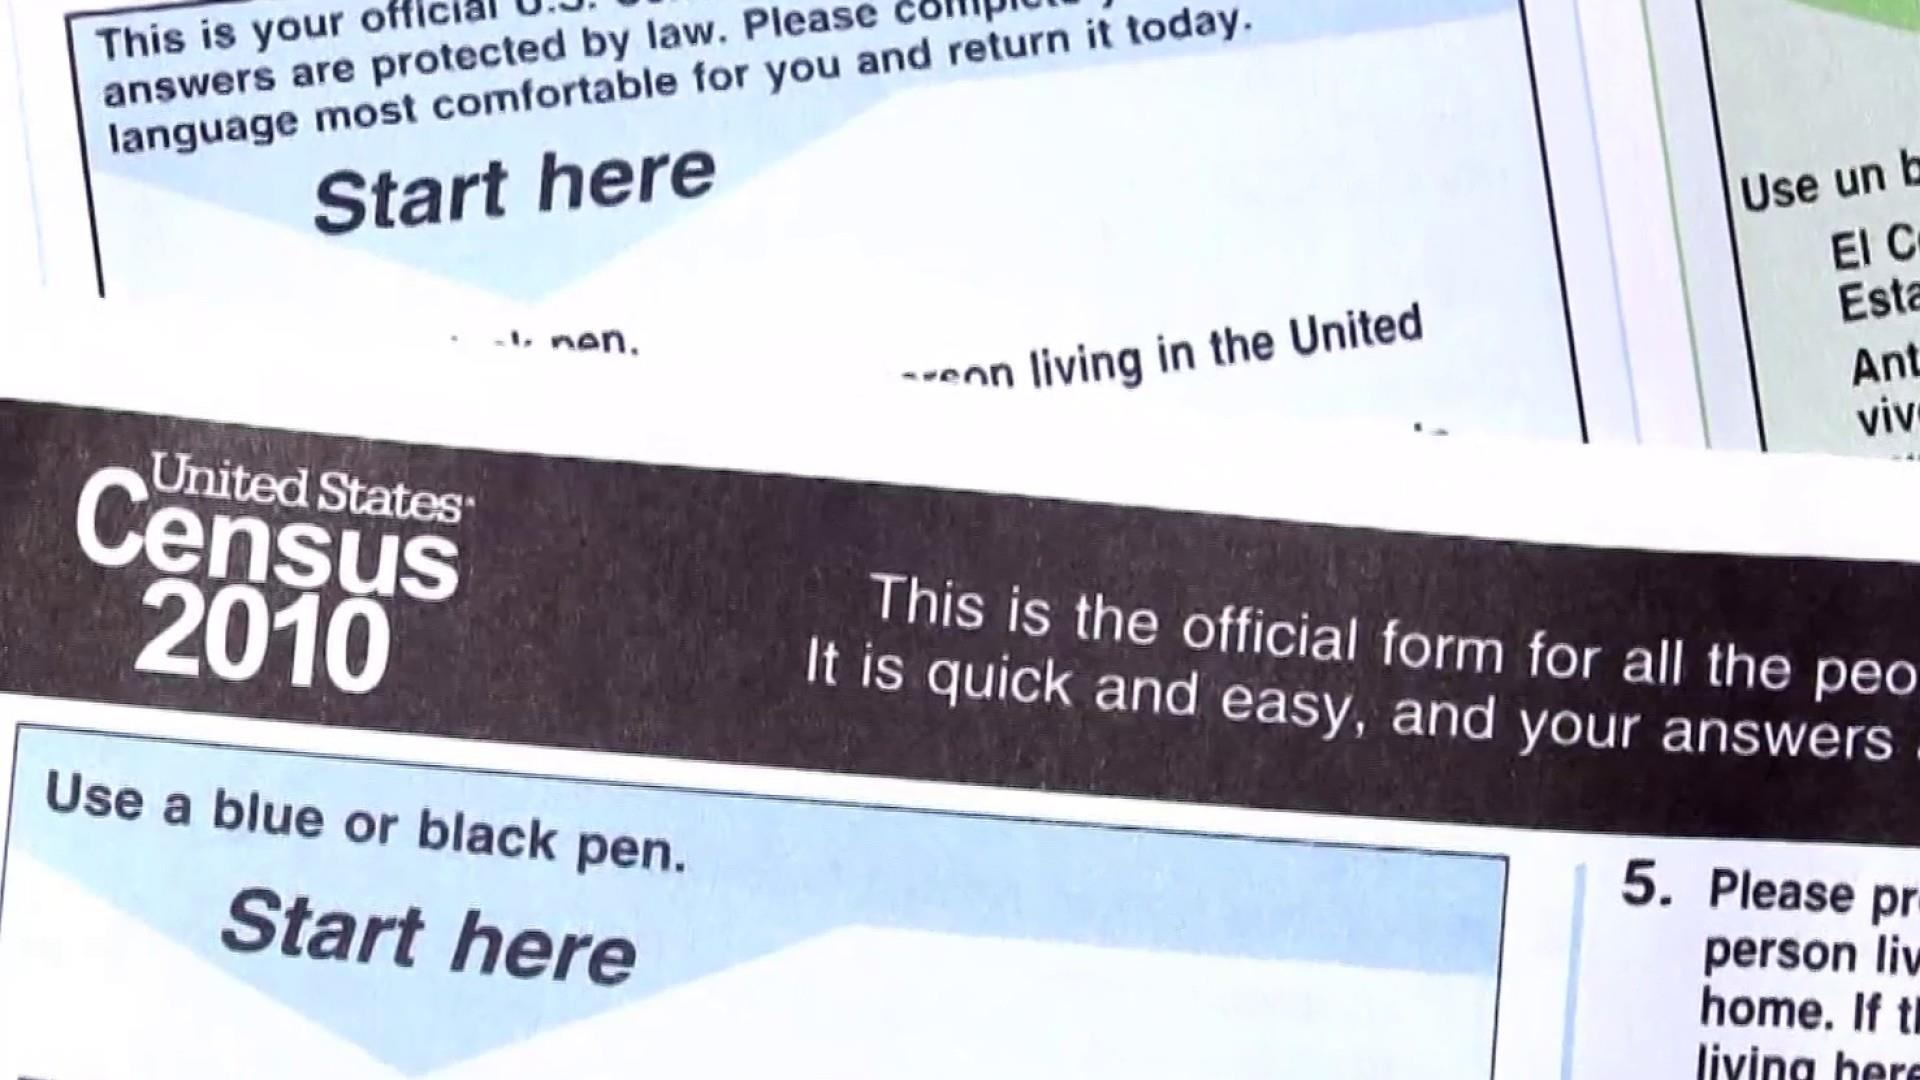 Is it legal for the Census Bureau to collect data on non-citizens?